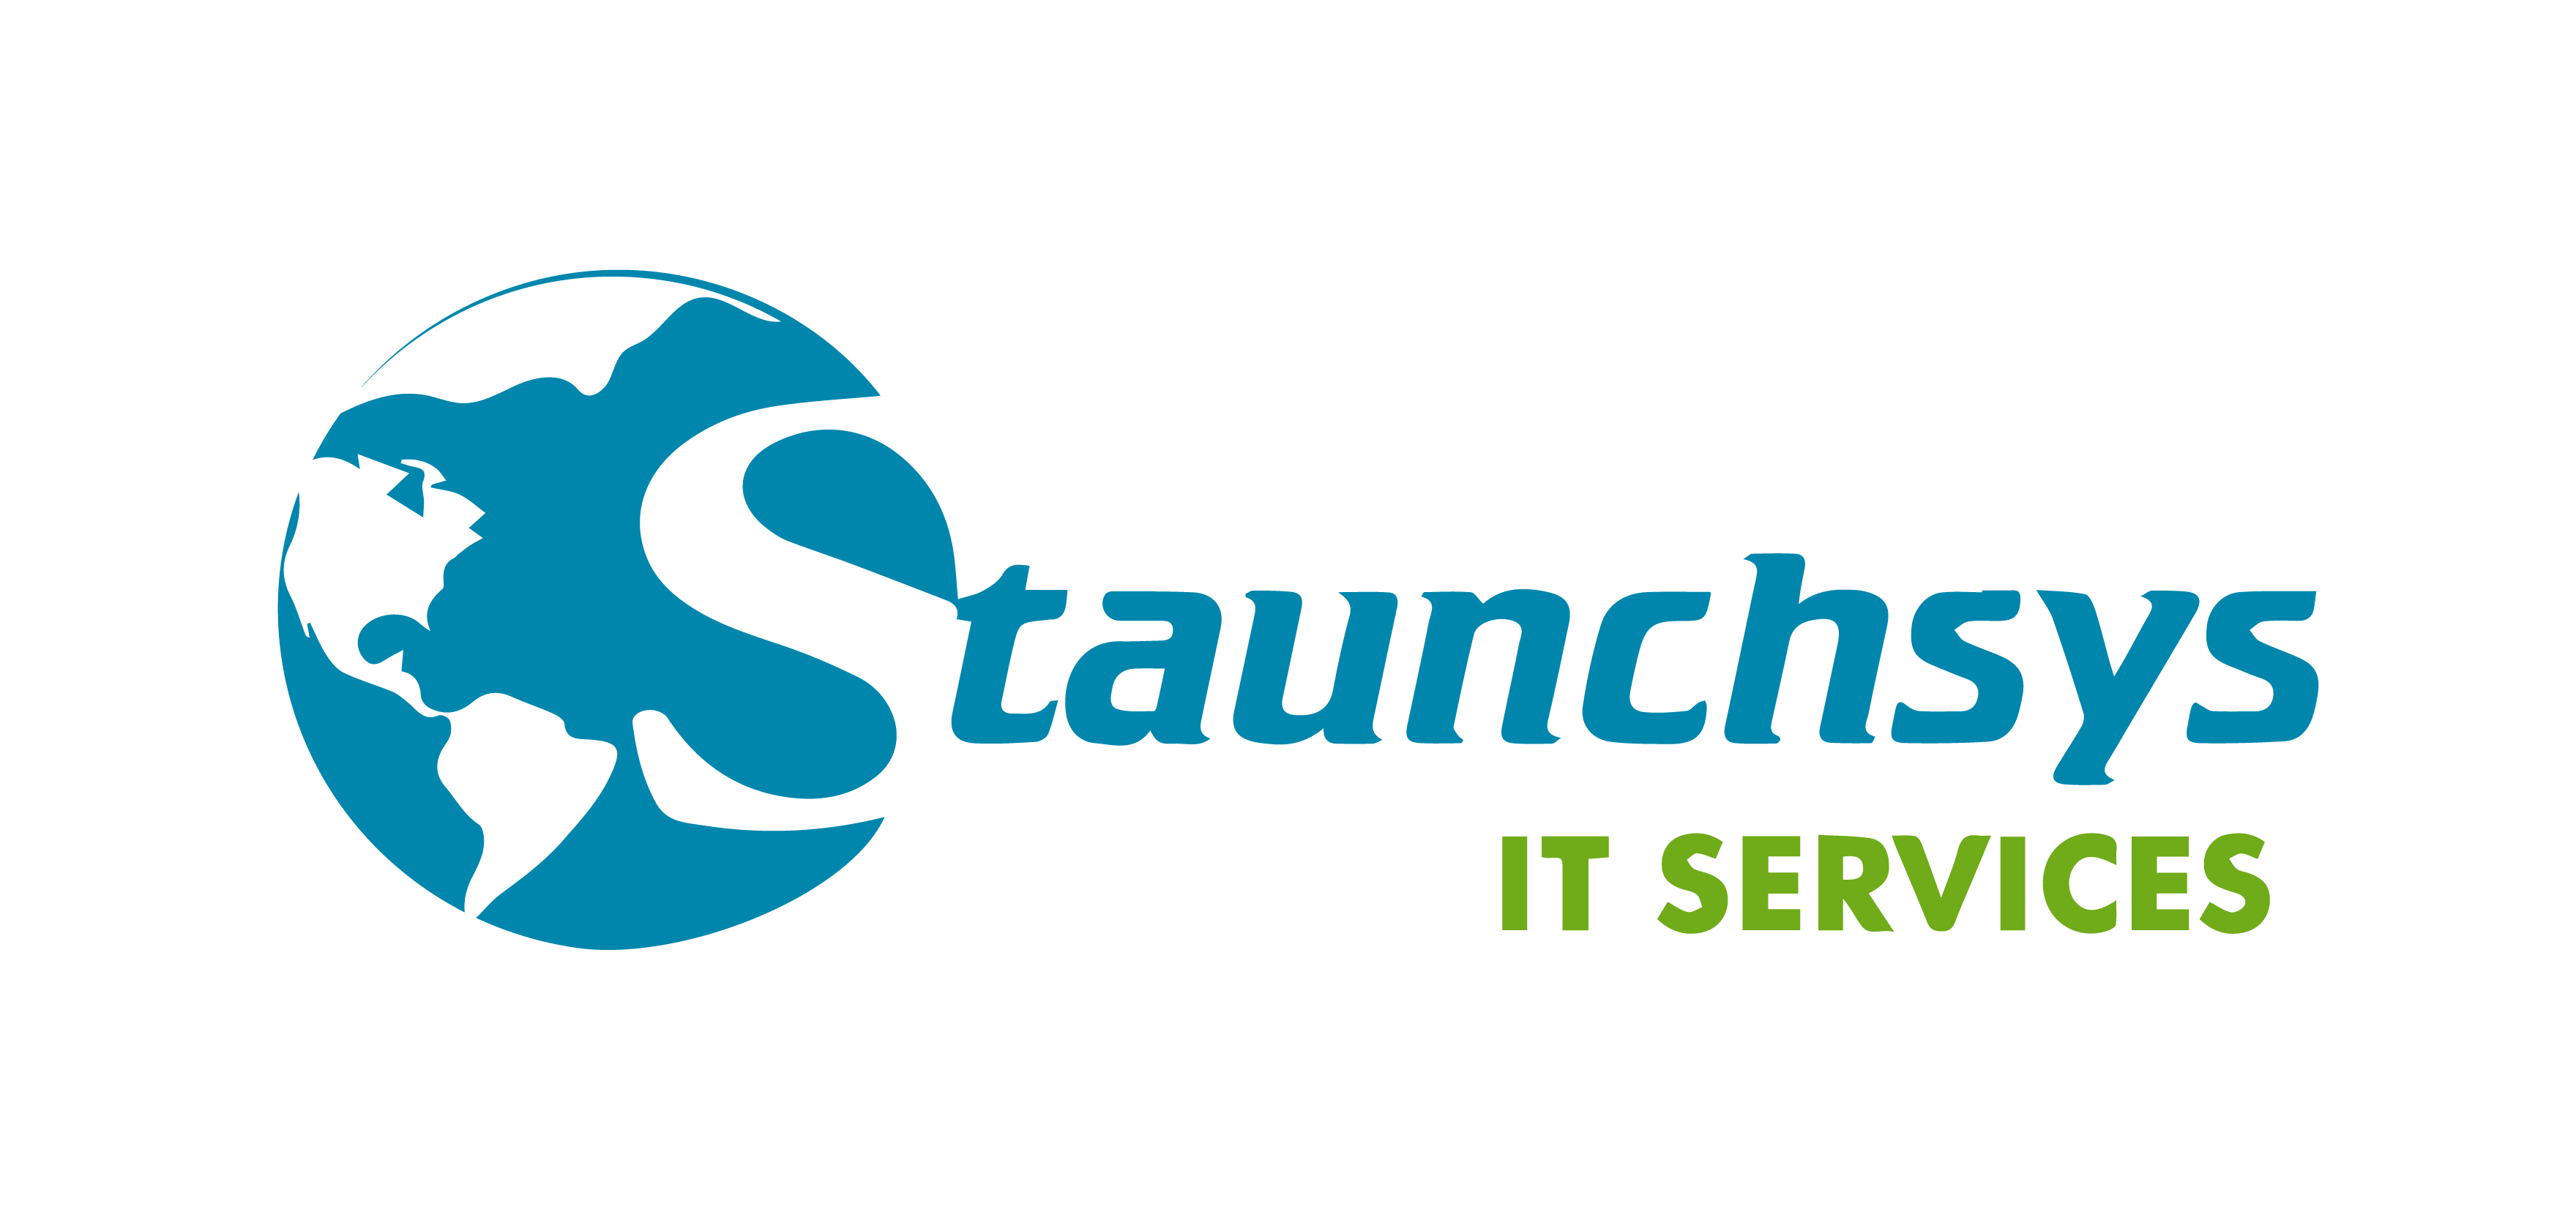 Staunchsys IT Services Pvt. Ltd. Logo